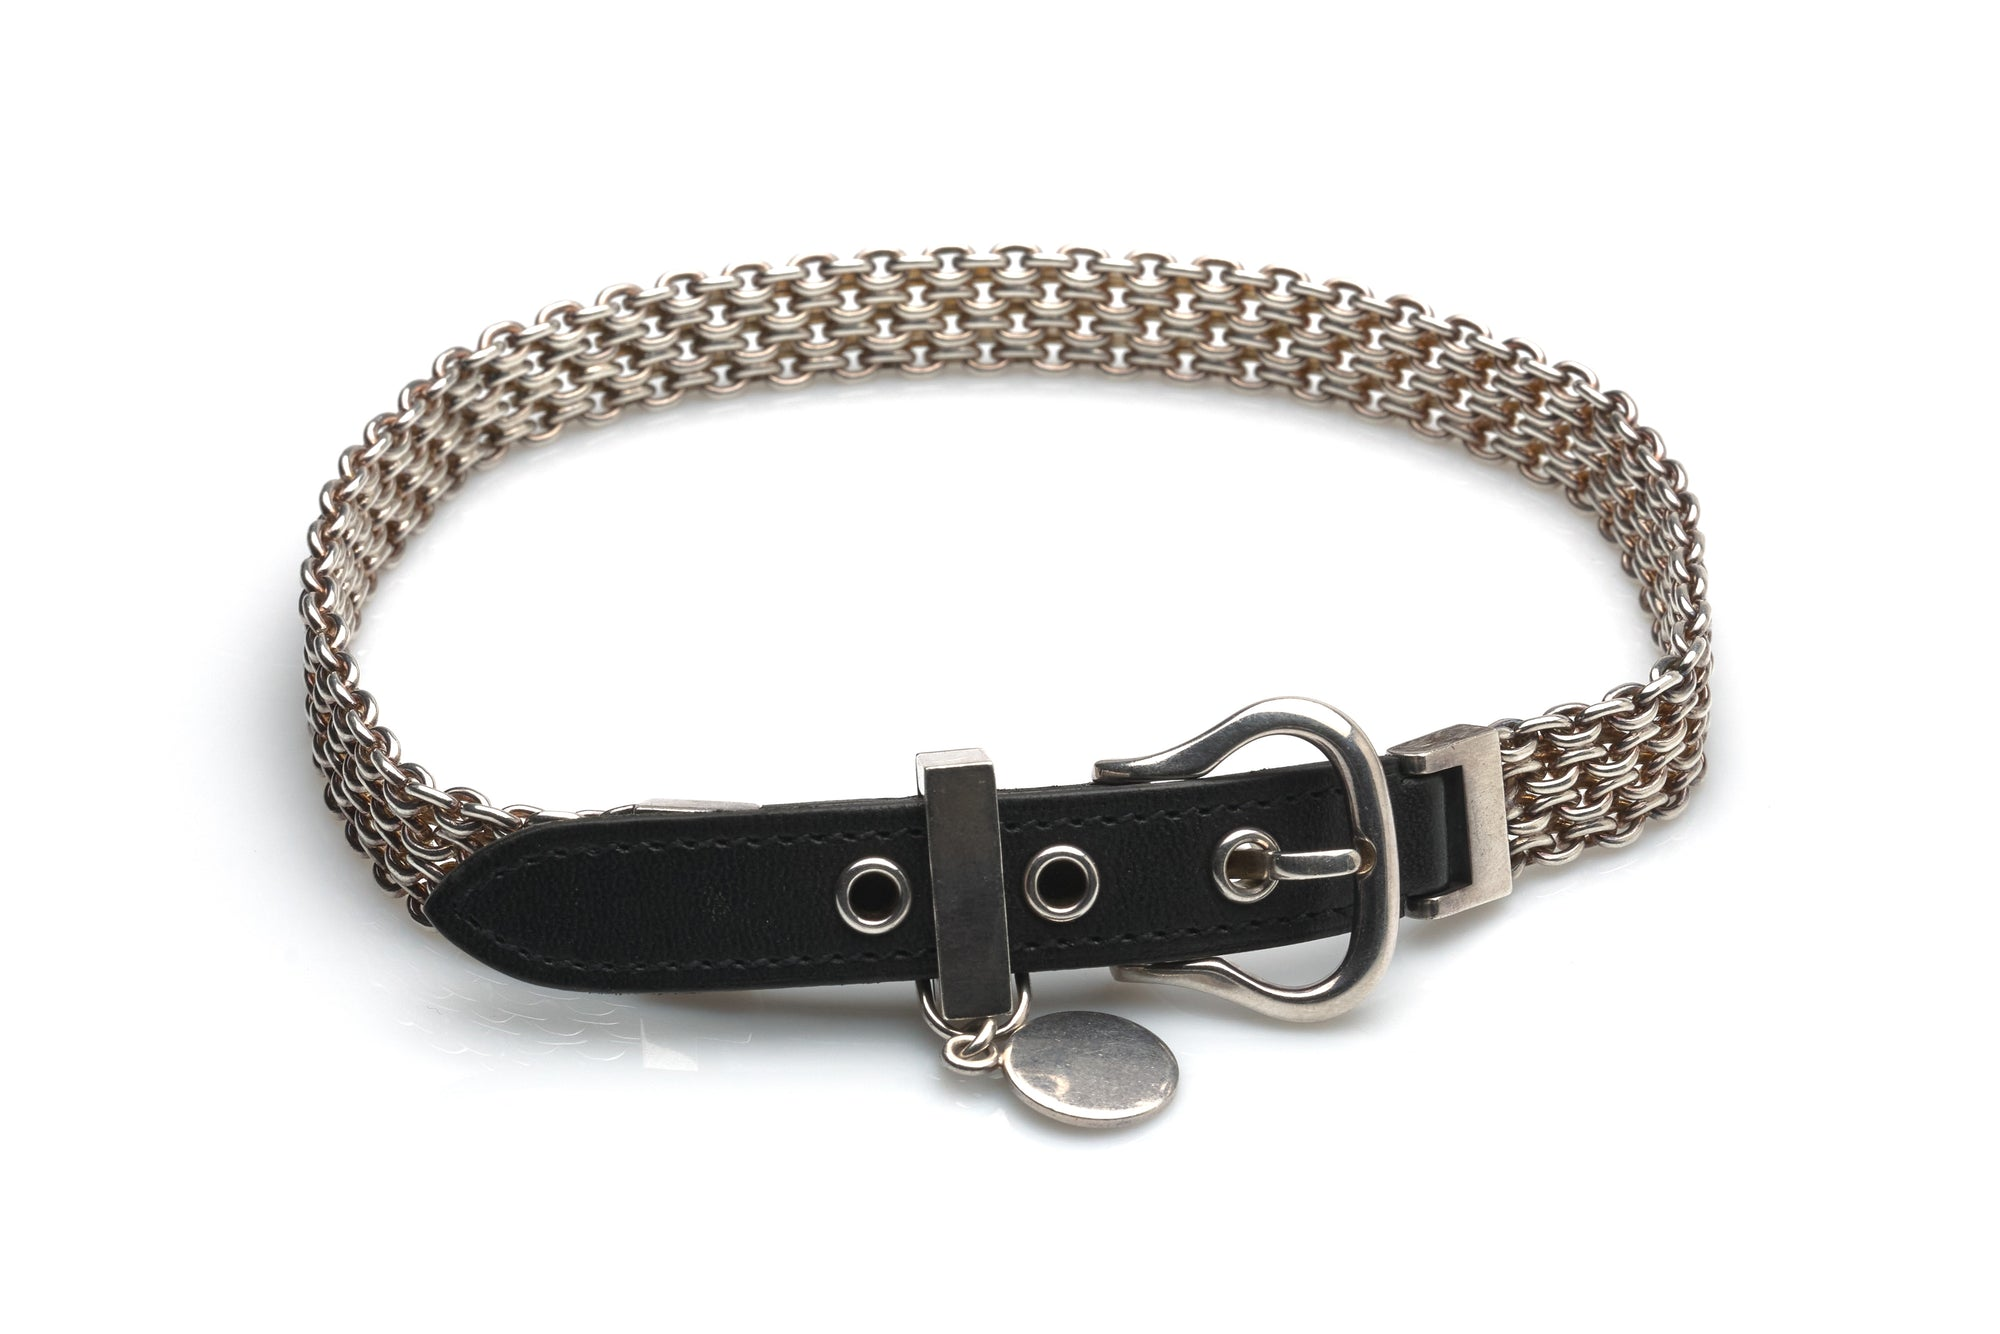 Hermes Sterling Silver & Leather Bracelet